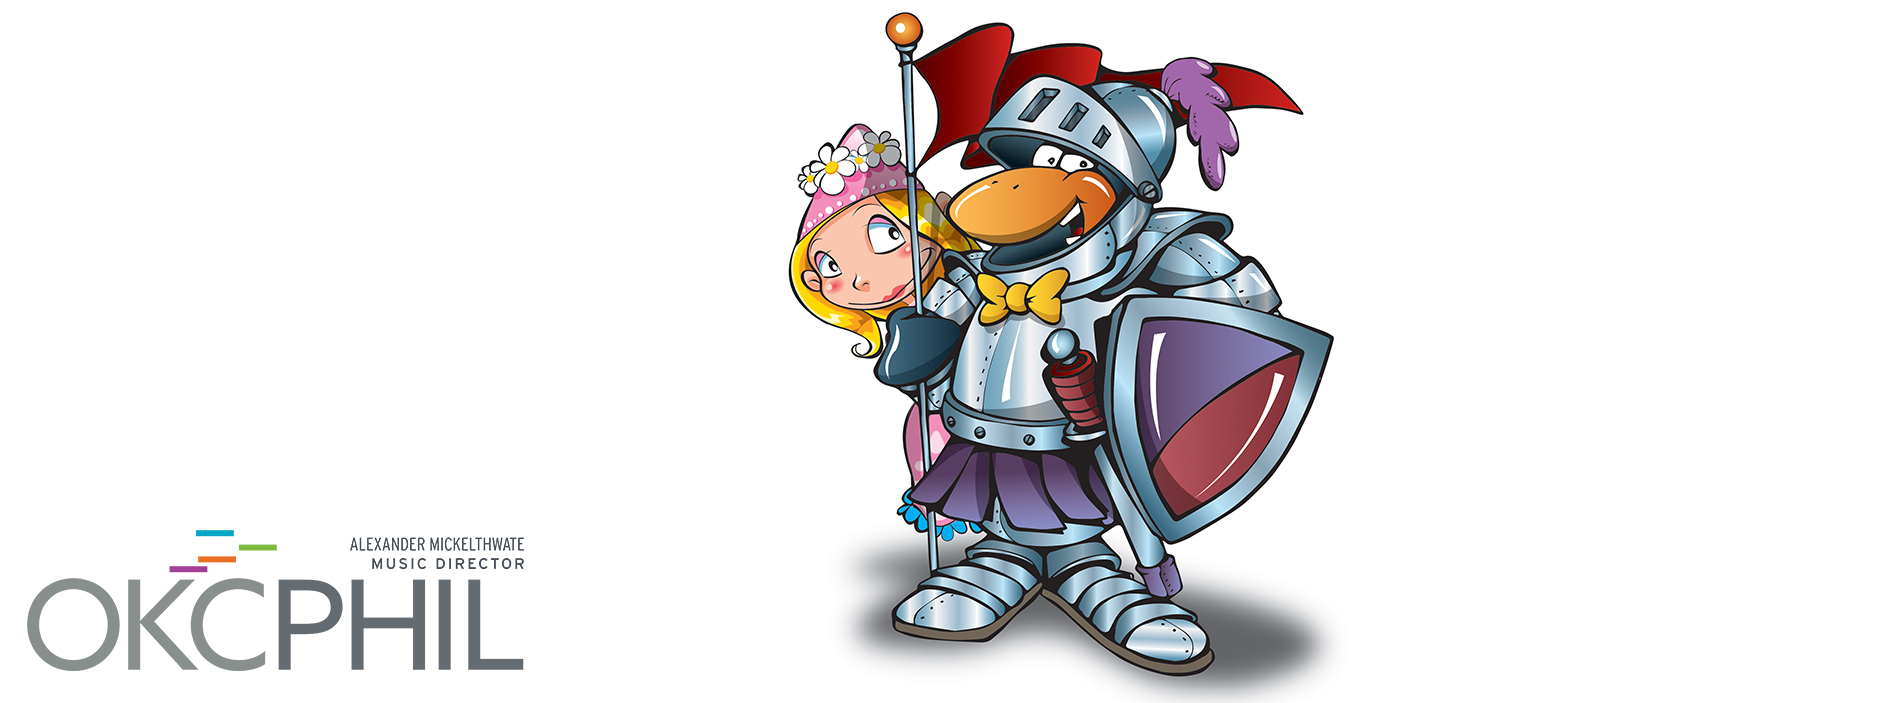 Discovery 2 Knights and Princesses